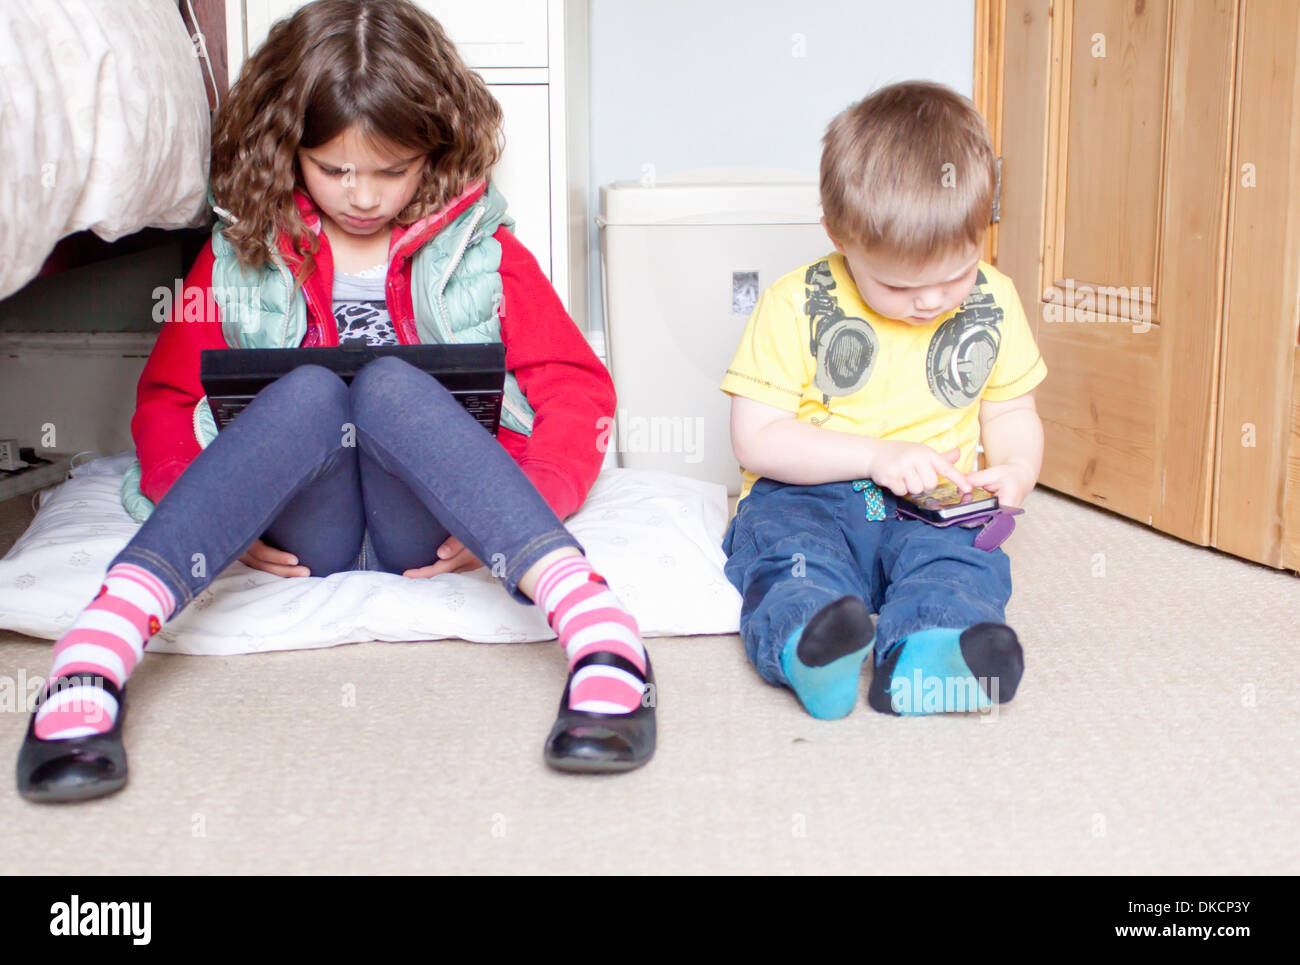 Children using digital tablet and cellular phone - Stock Image